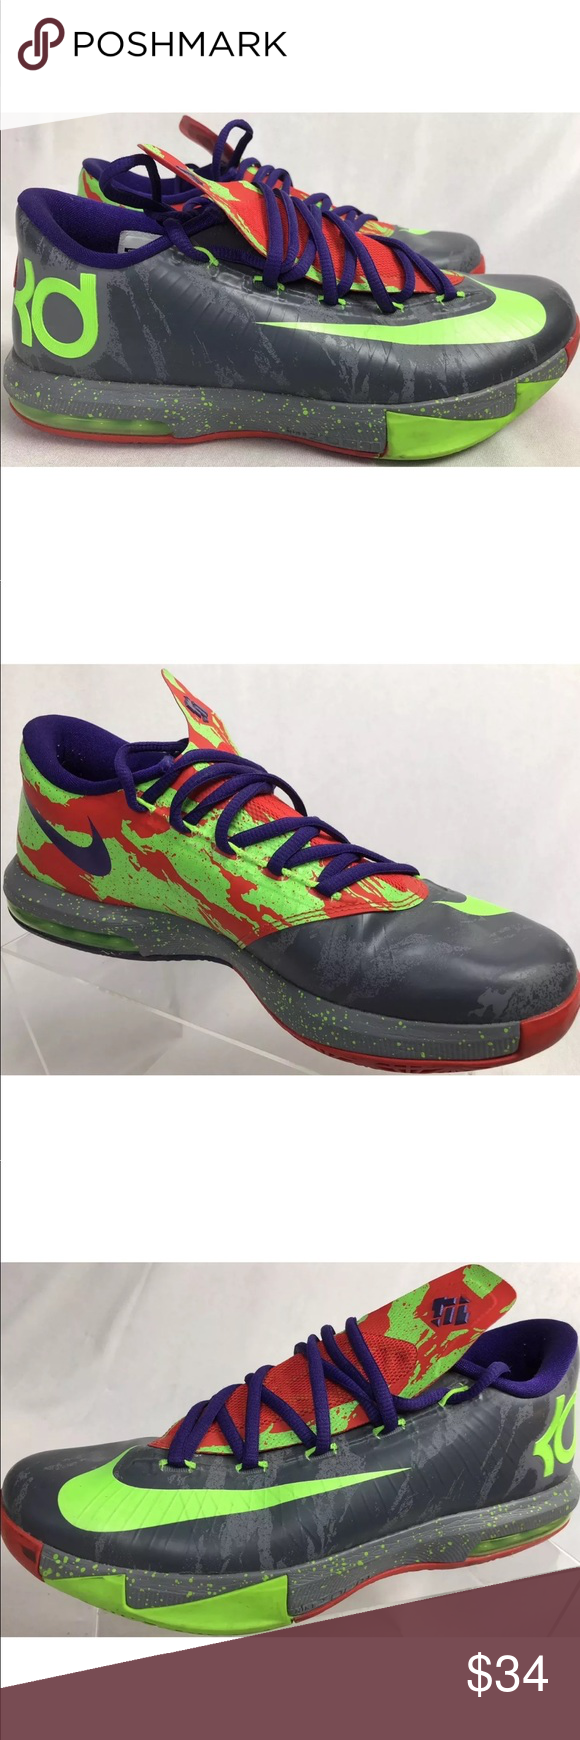 0f86e21bcc74 Nike KD Kevin Durant Men s 8 Basketball shoes You are buying a pair of NIKE  599424-008 KD Men s Shoes VI 6 Energy Durant Basketball Euro 41 Color Green  ...